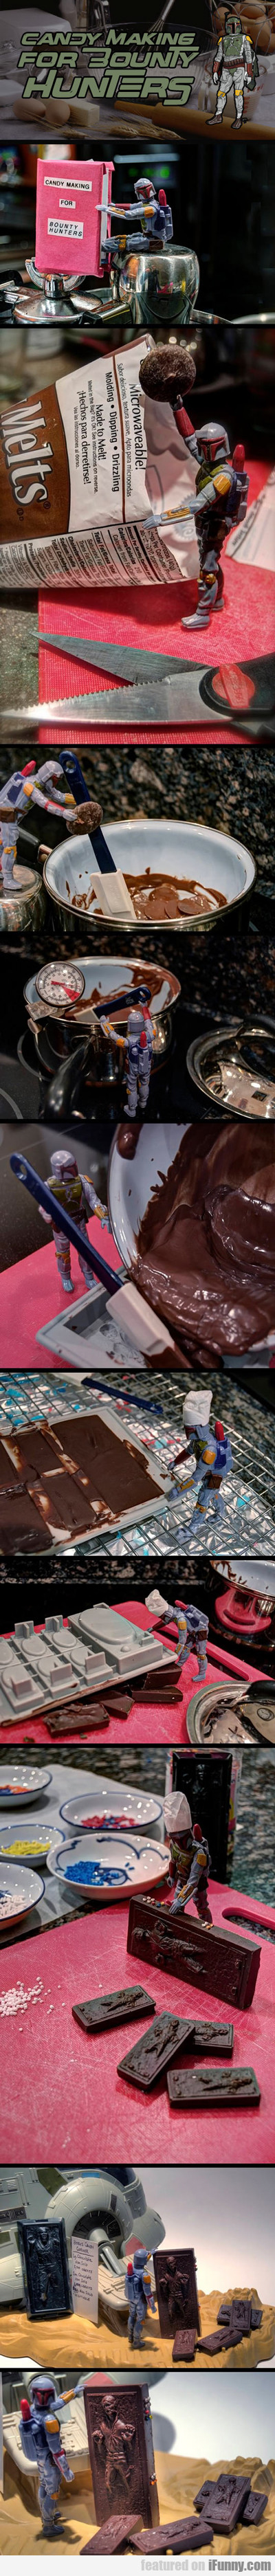 candy making for bounty hunters...